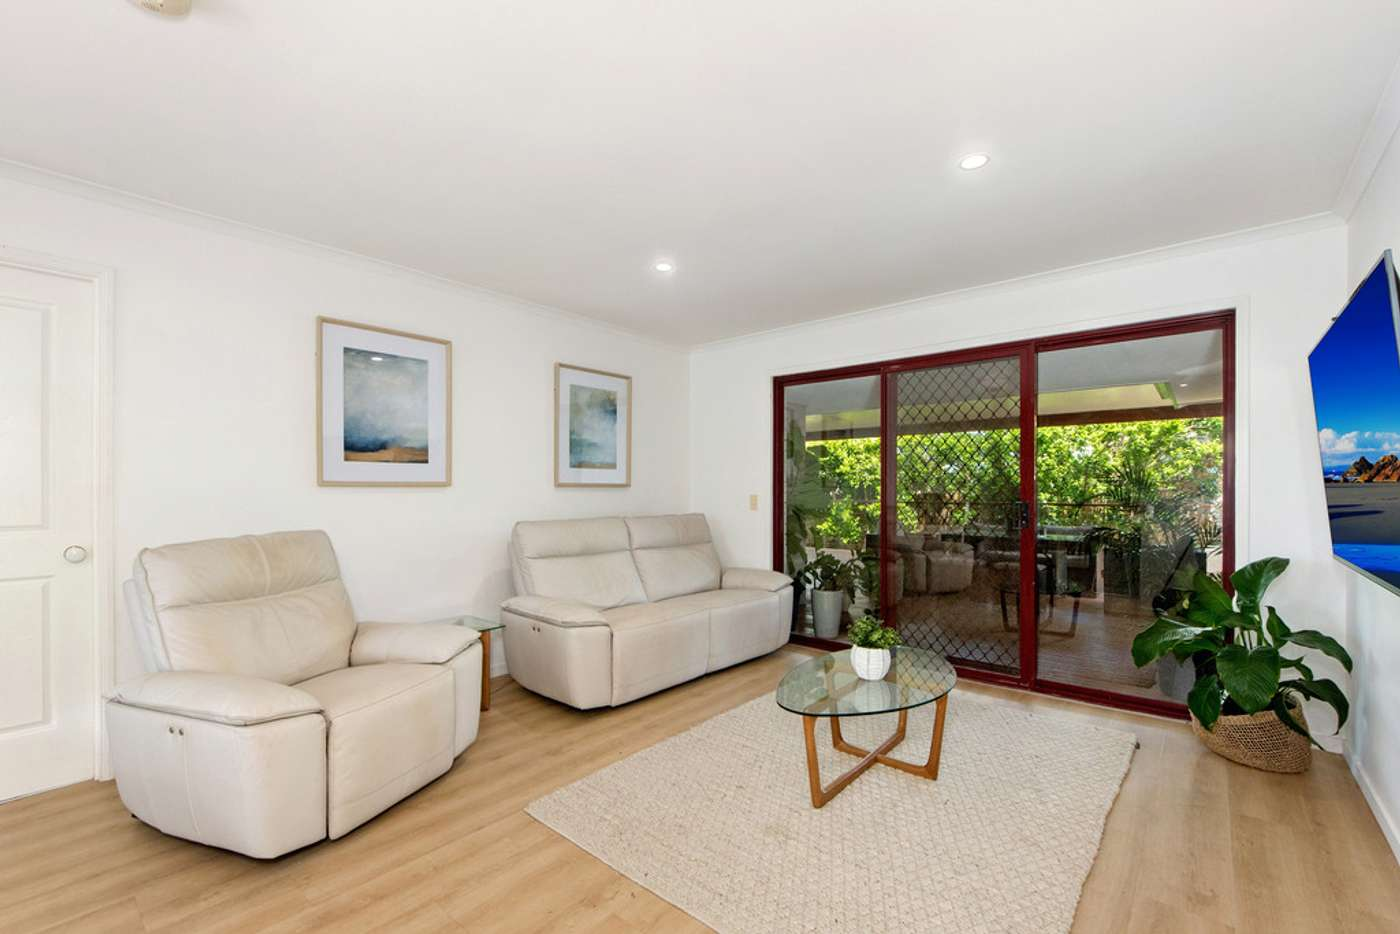 Seventh view of Homely house listing, 31 Willunga Place, Merrimac QLD 4226